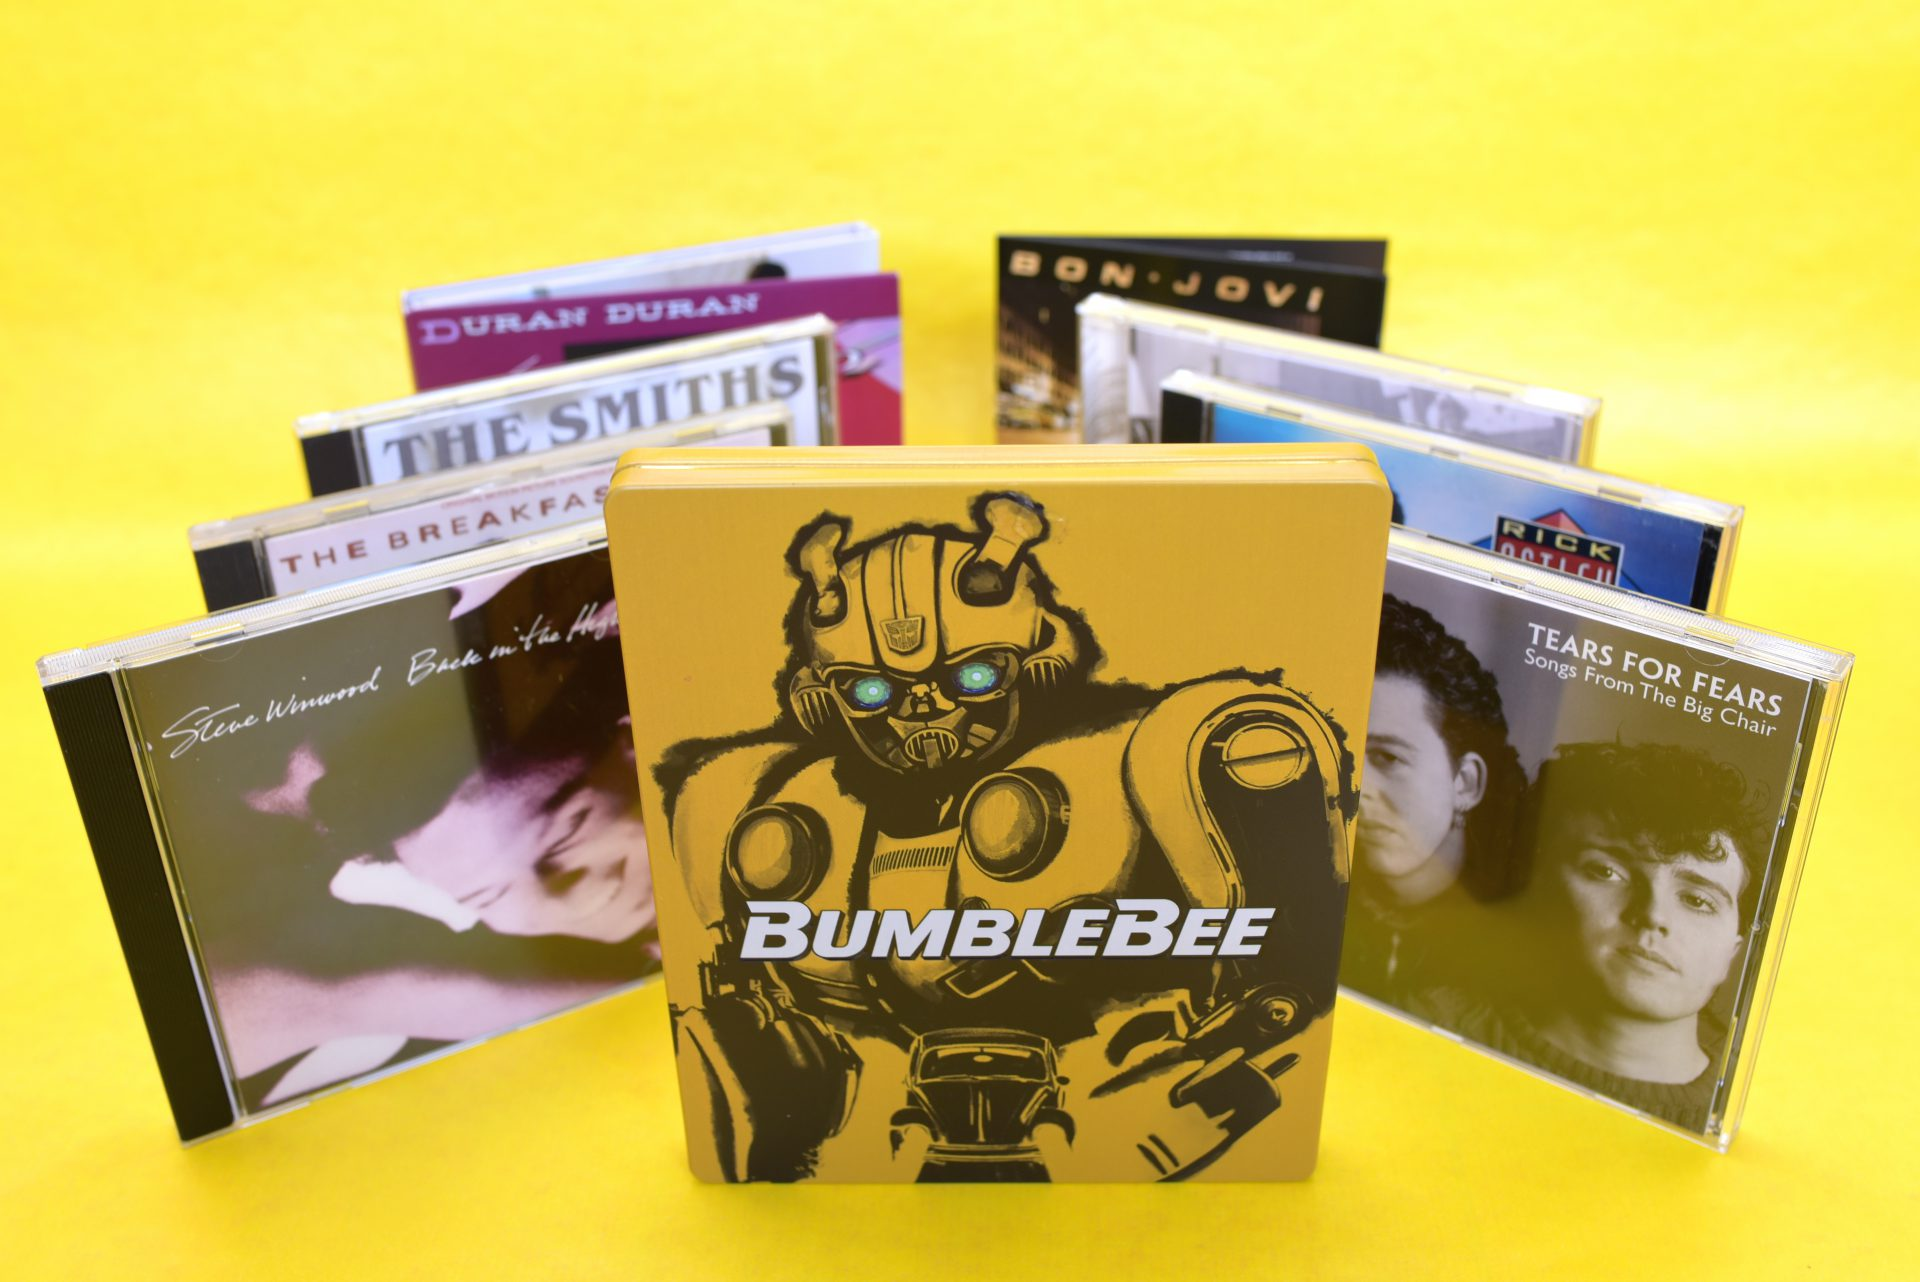 Bumblebee: Don't you (forget about the 80s)